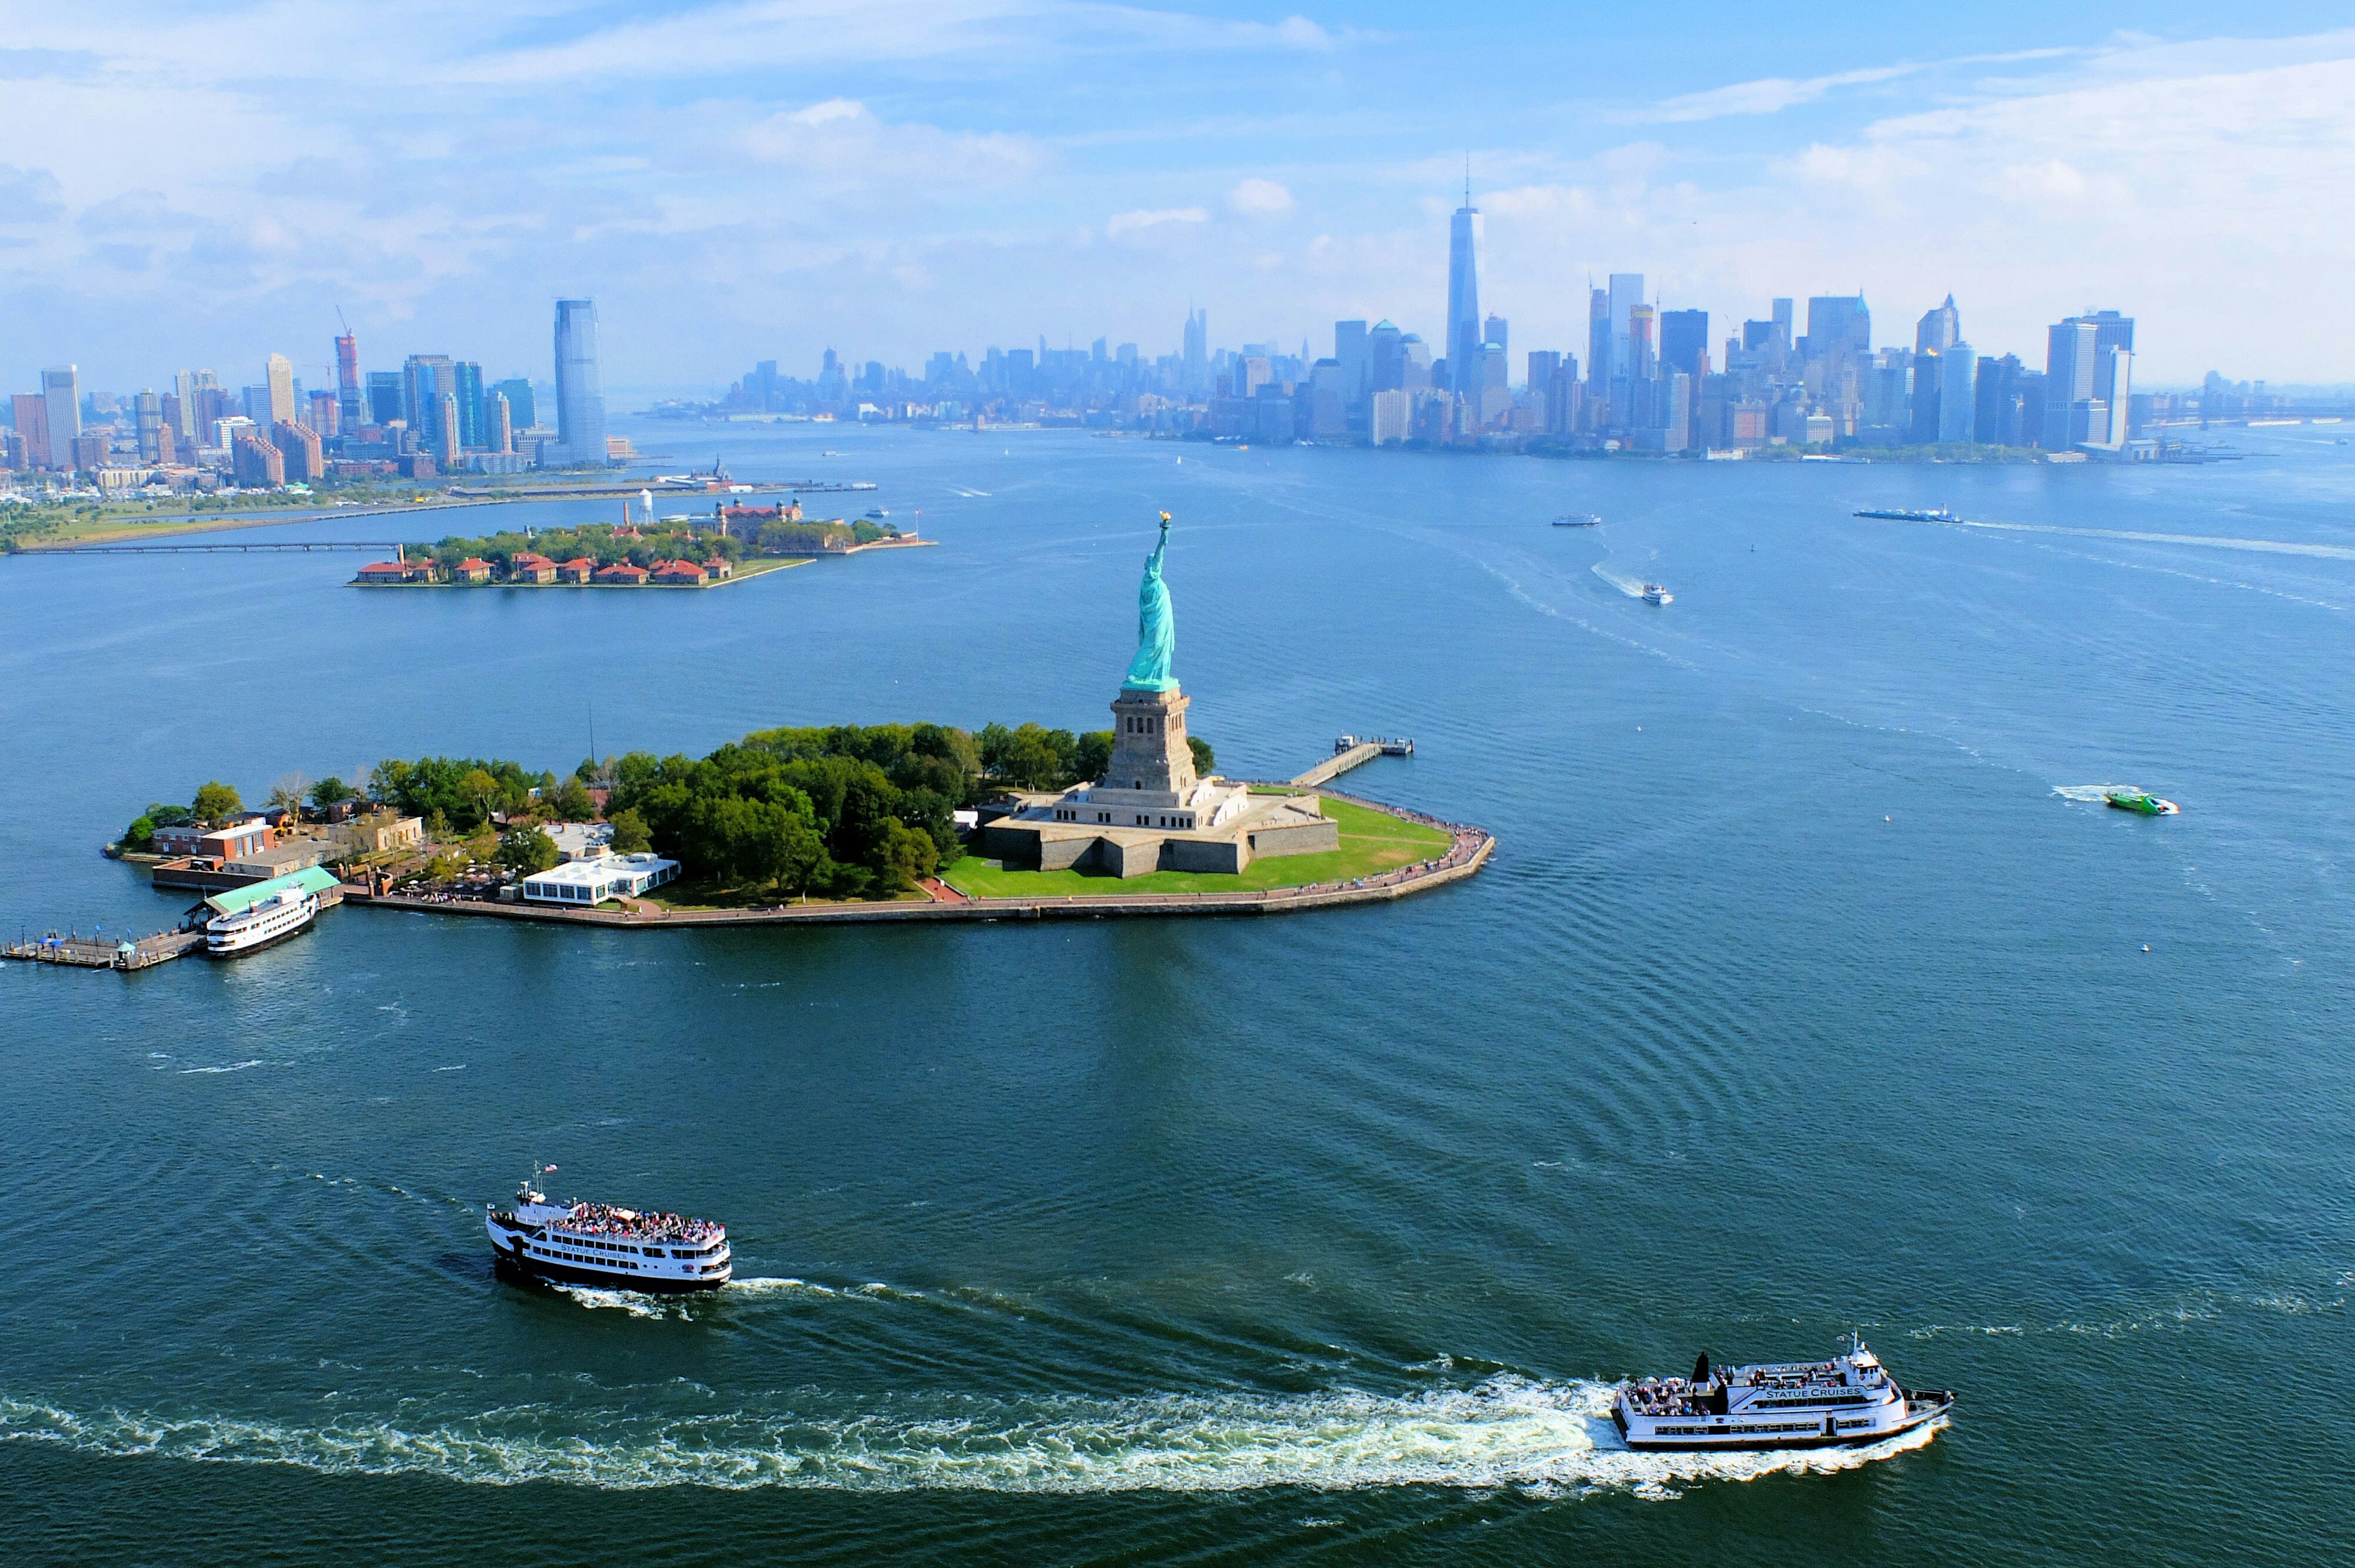 Helicopter Tour New York Skyline – High Quality Wallpaper